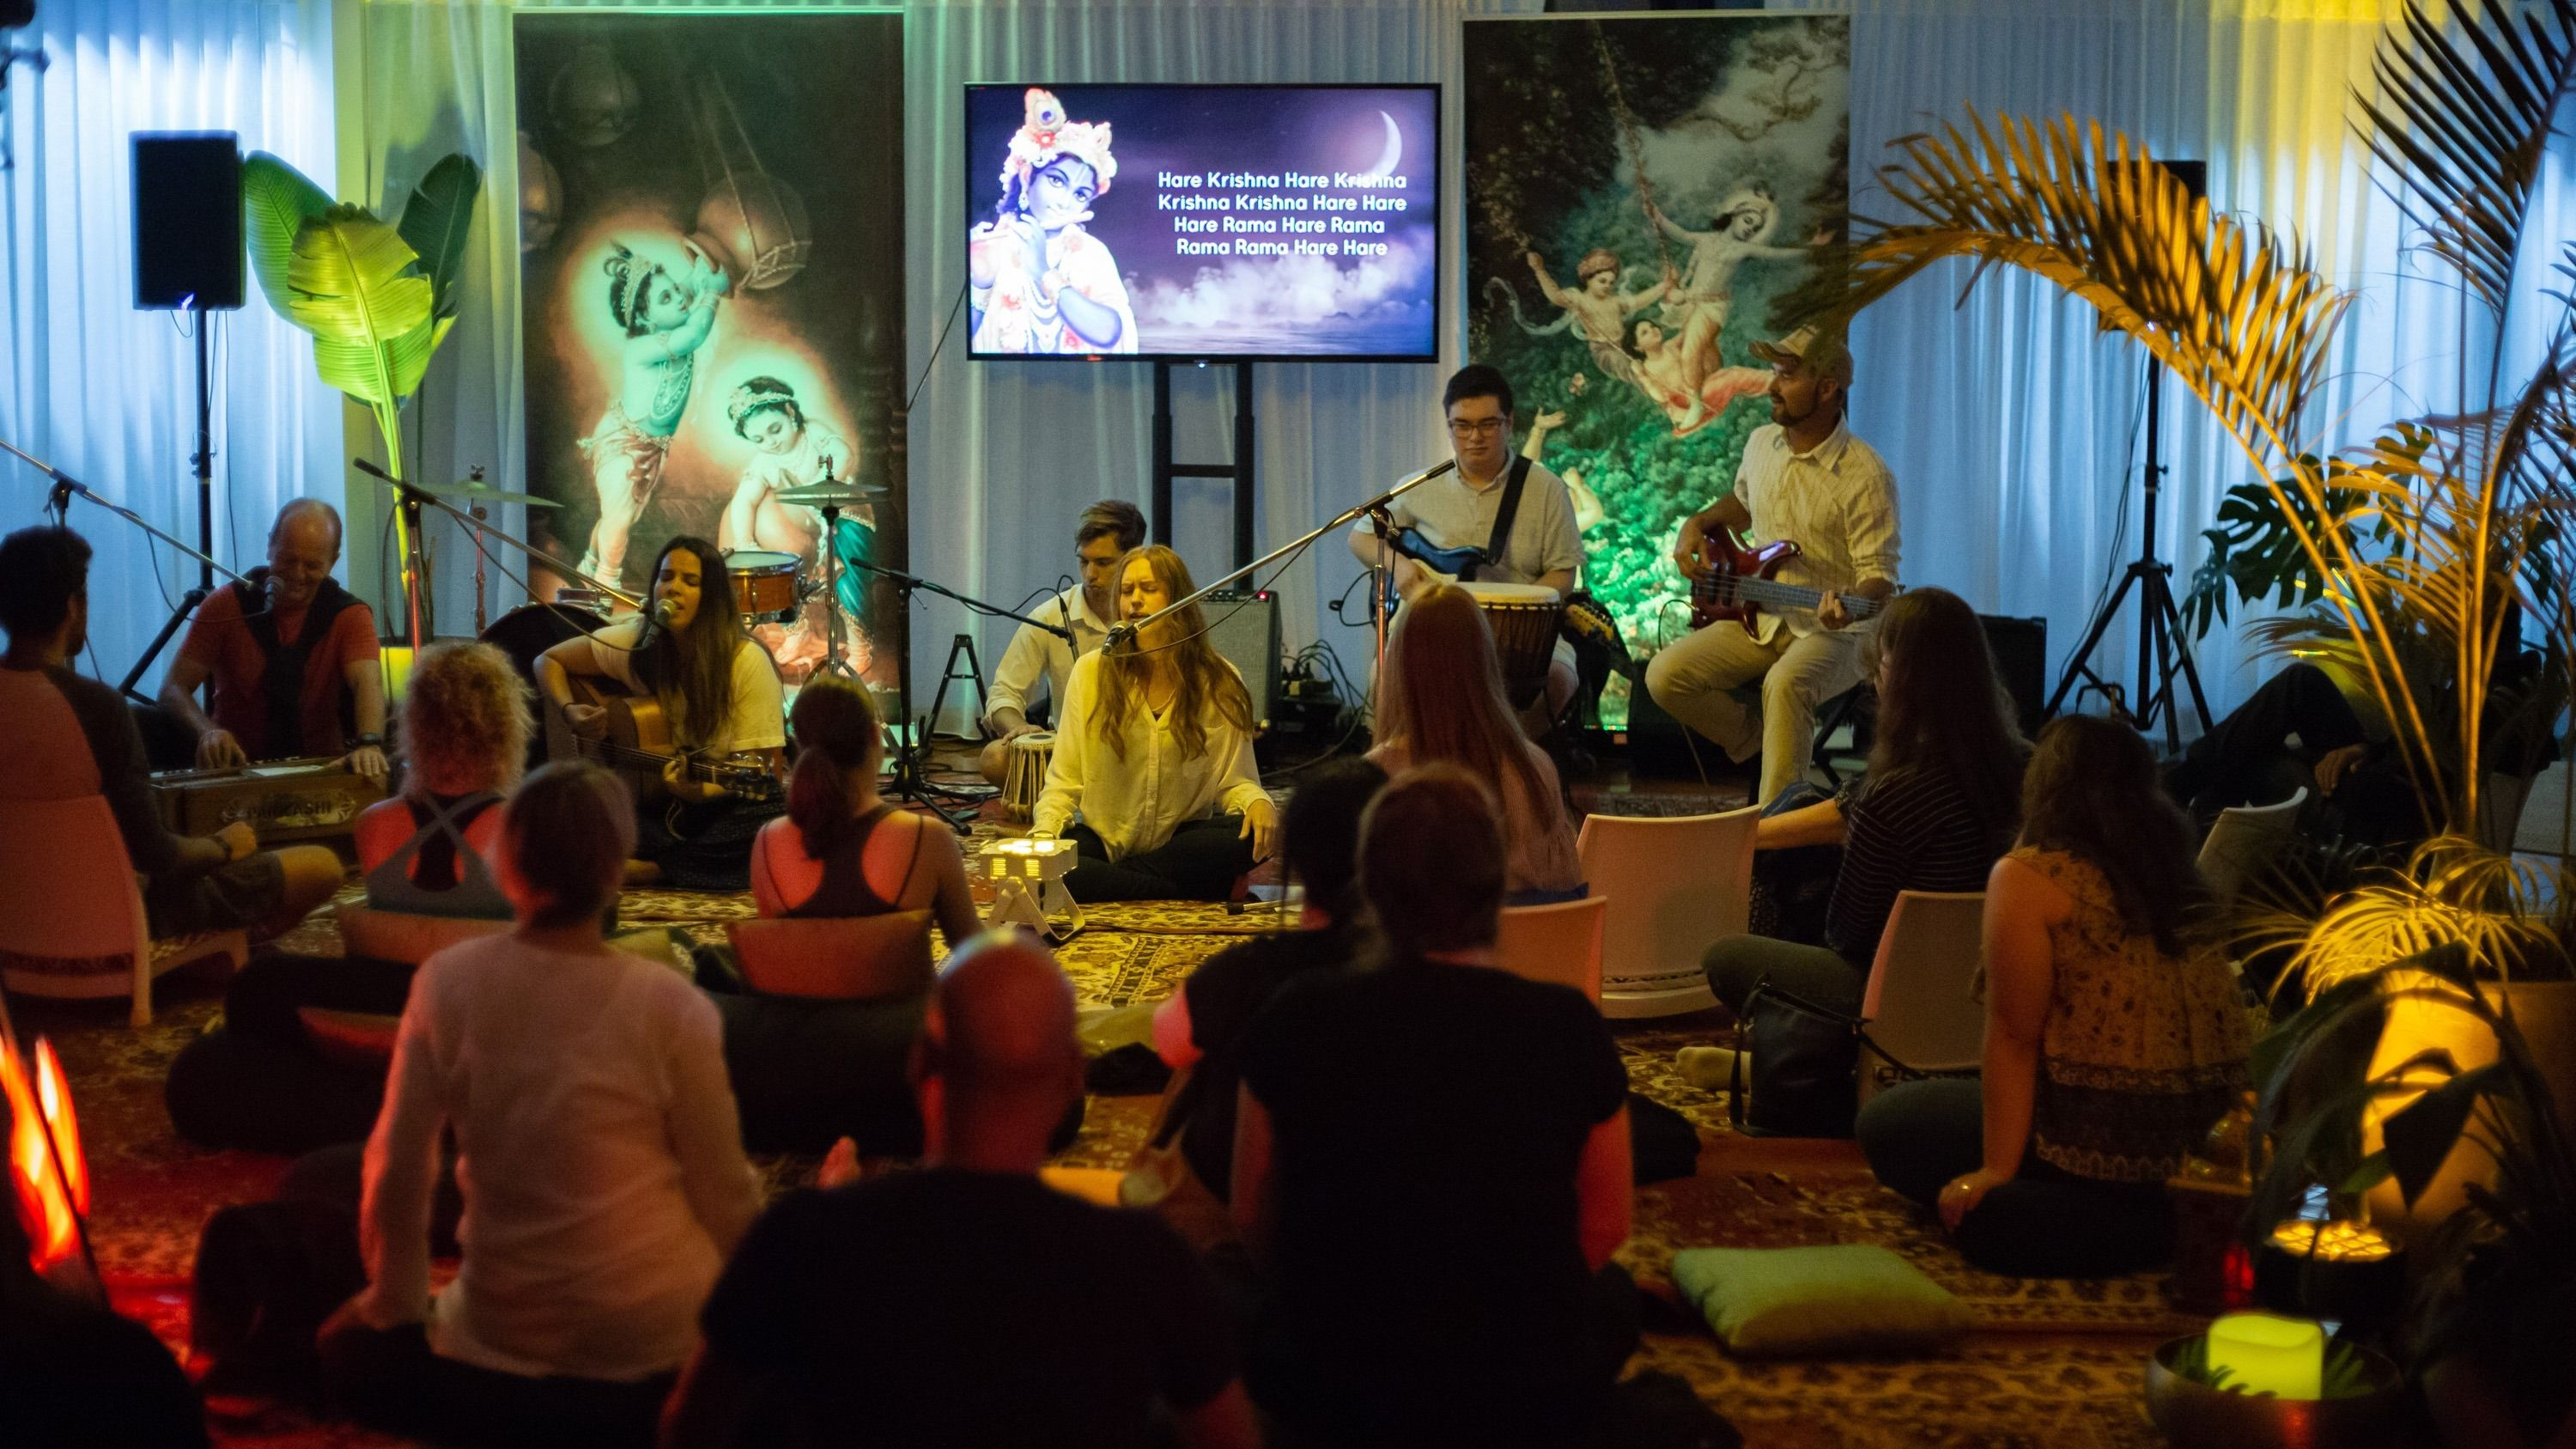 The Mantra Room - Live Kirtan - West End